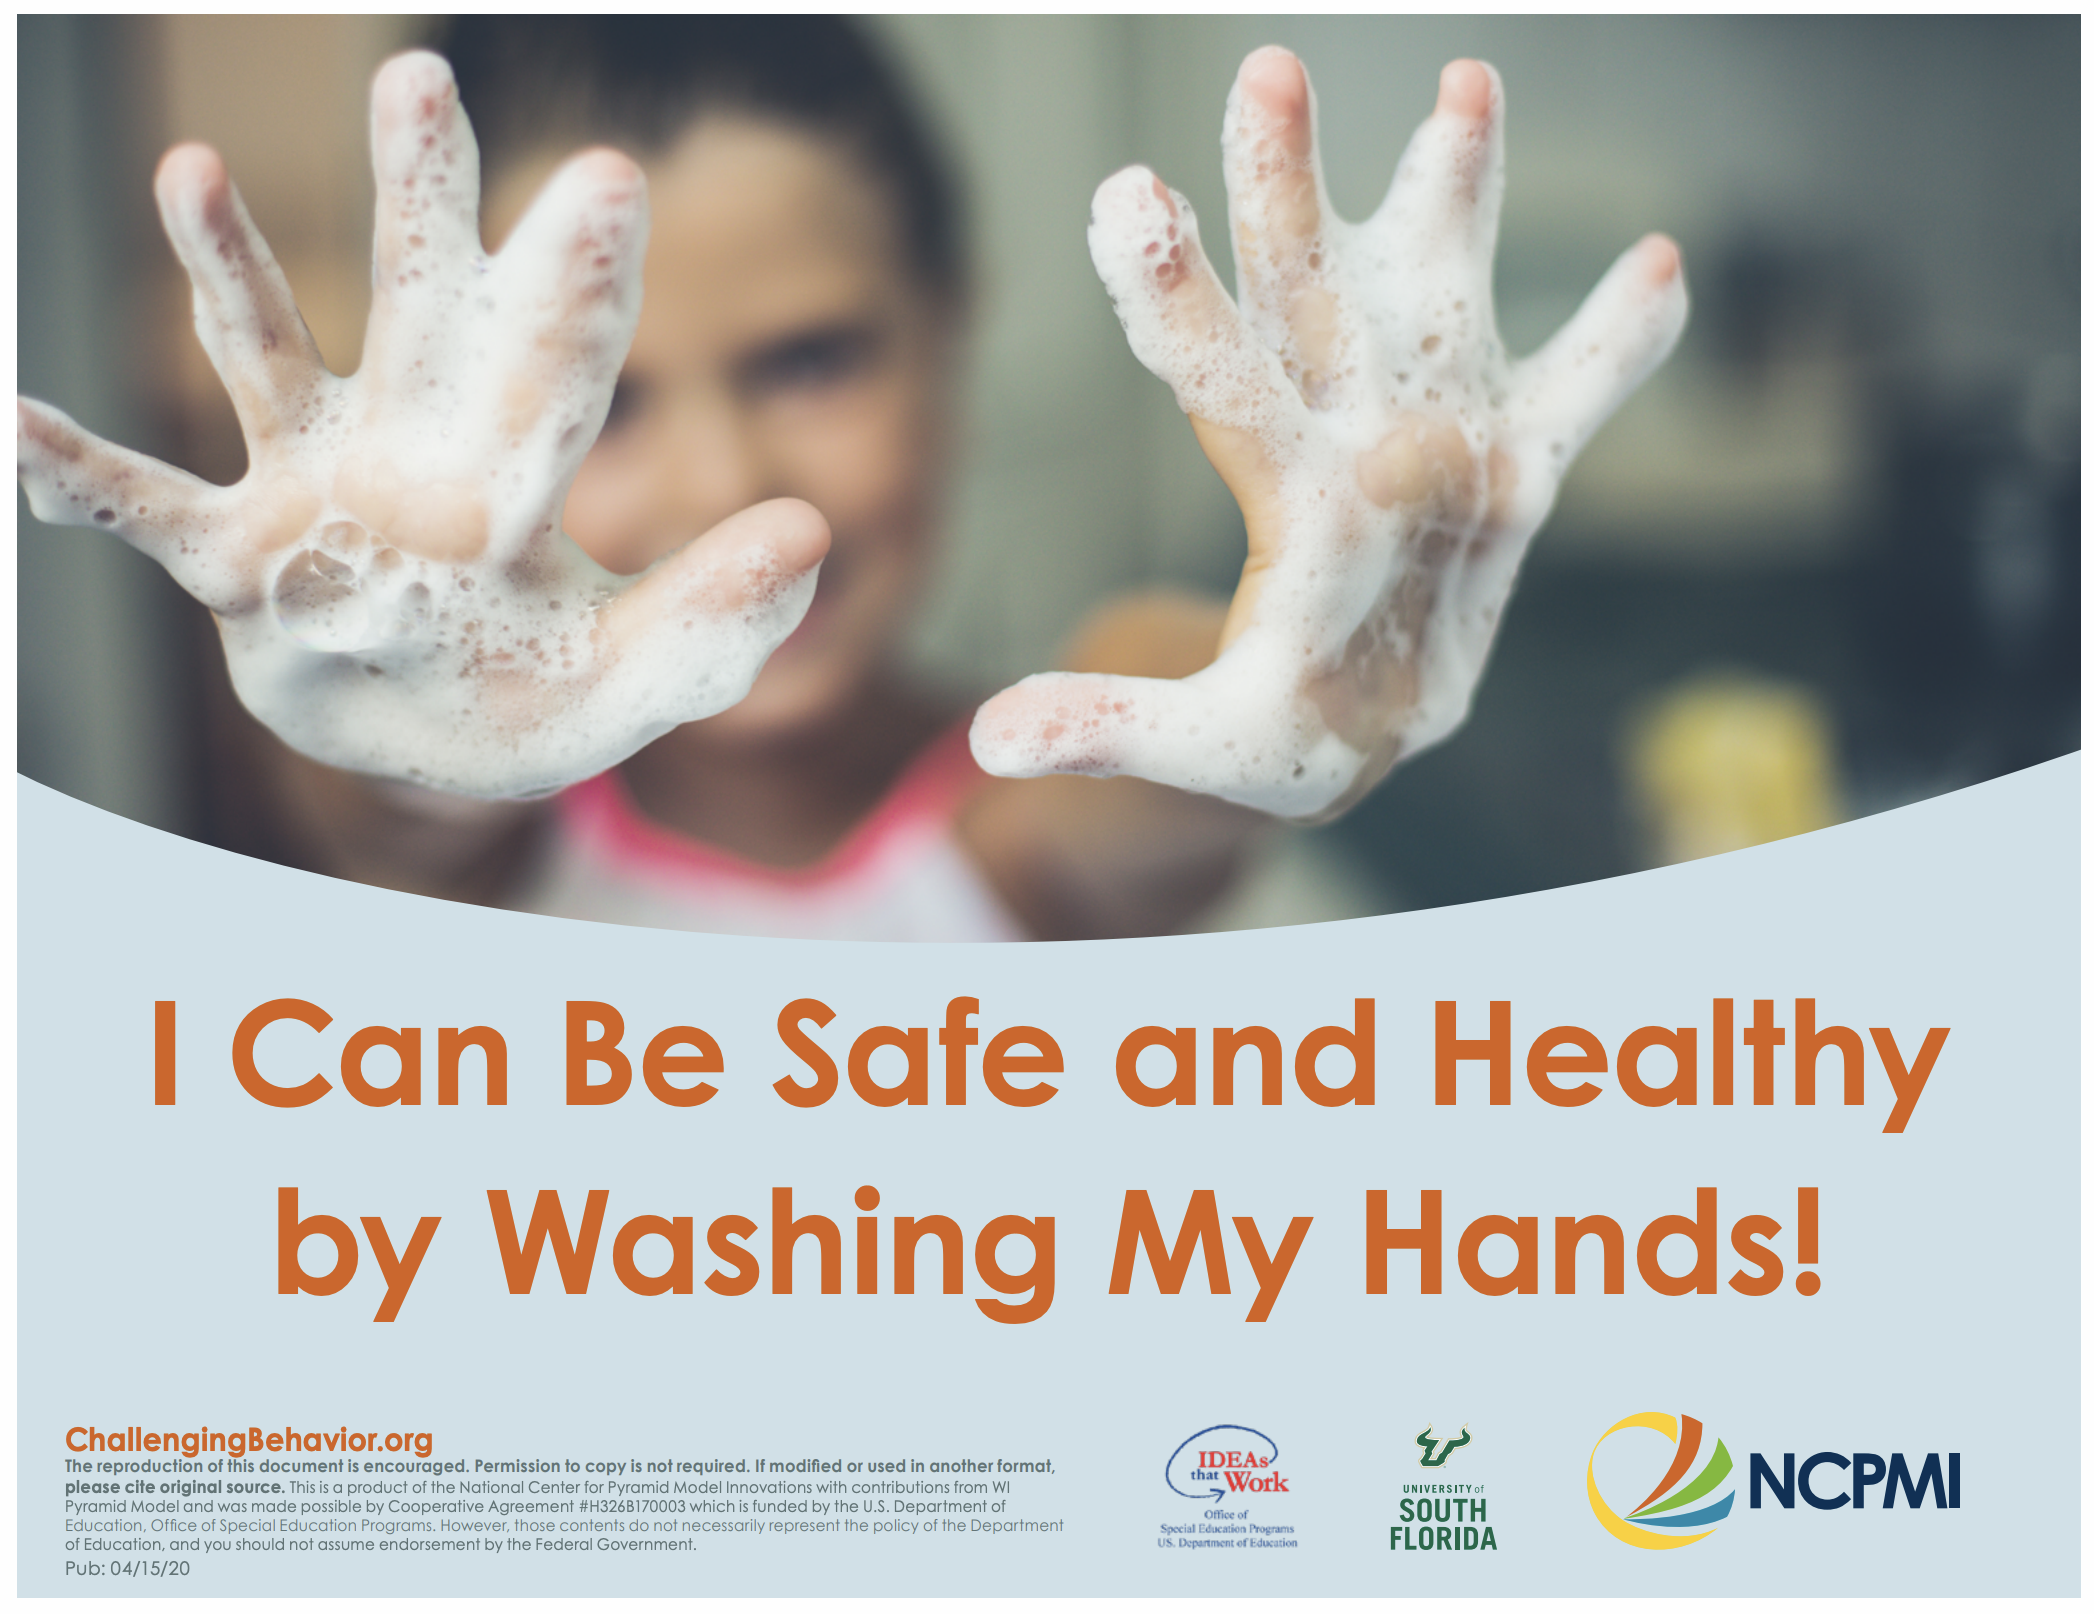 I Can Be Safe and Healthy By Washing My Hands!